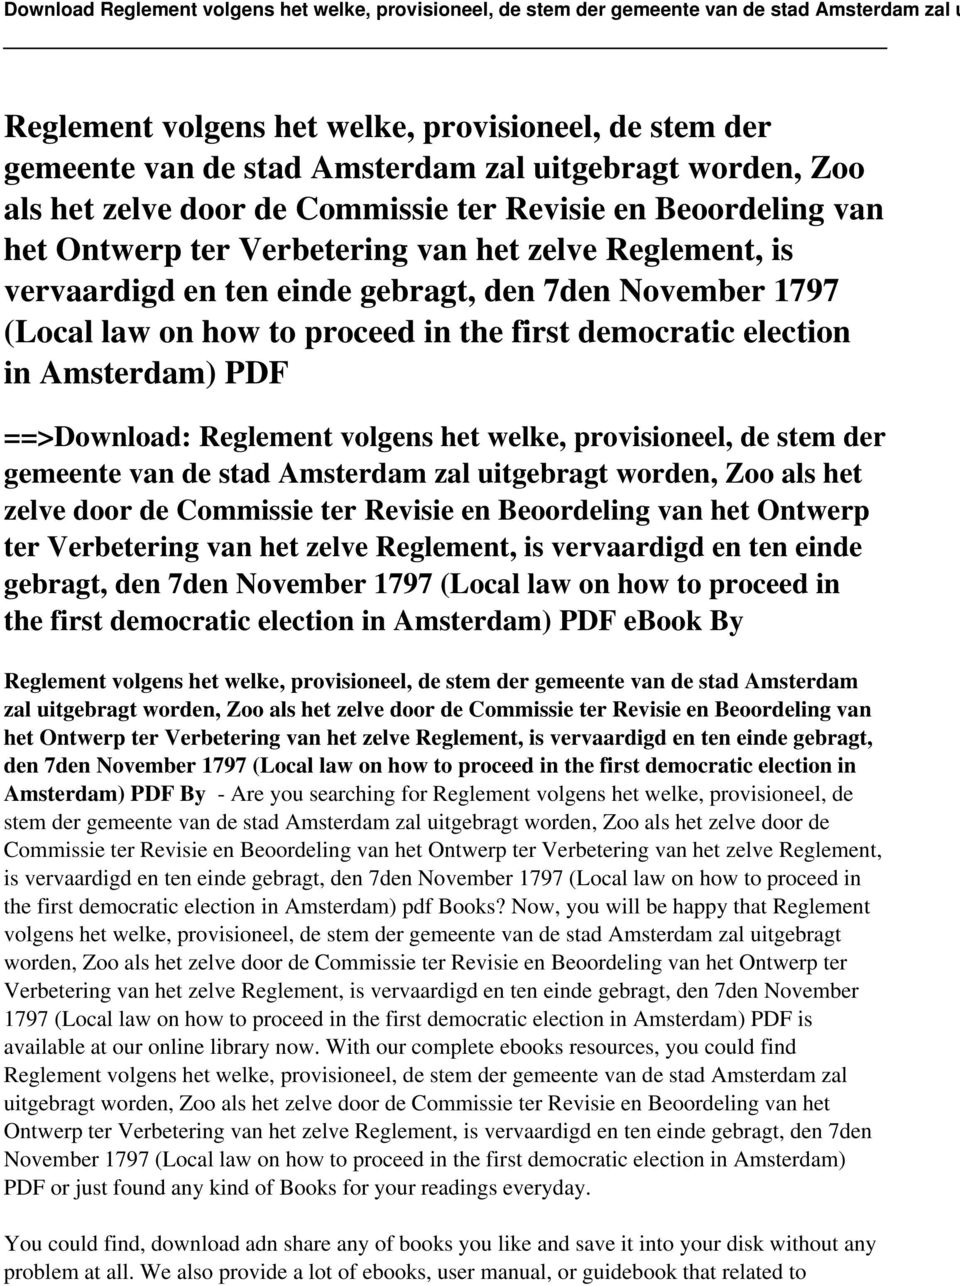 Verbetering van het zelve Reglement, is vervaardigd en ten einde gebragt, den 7den November 1797 (Local law on how to proceed in the first democratic election in Amsterdam) PDF ebook By  Verbetering